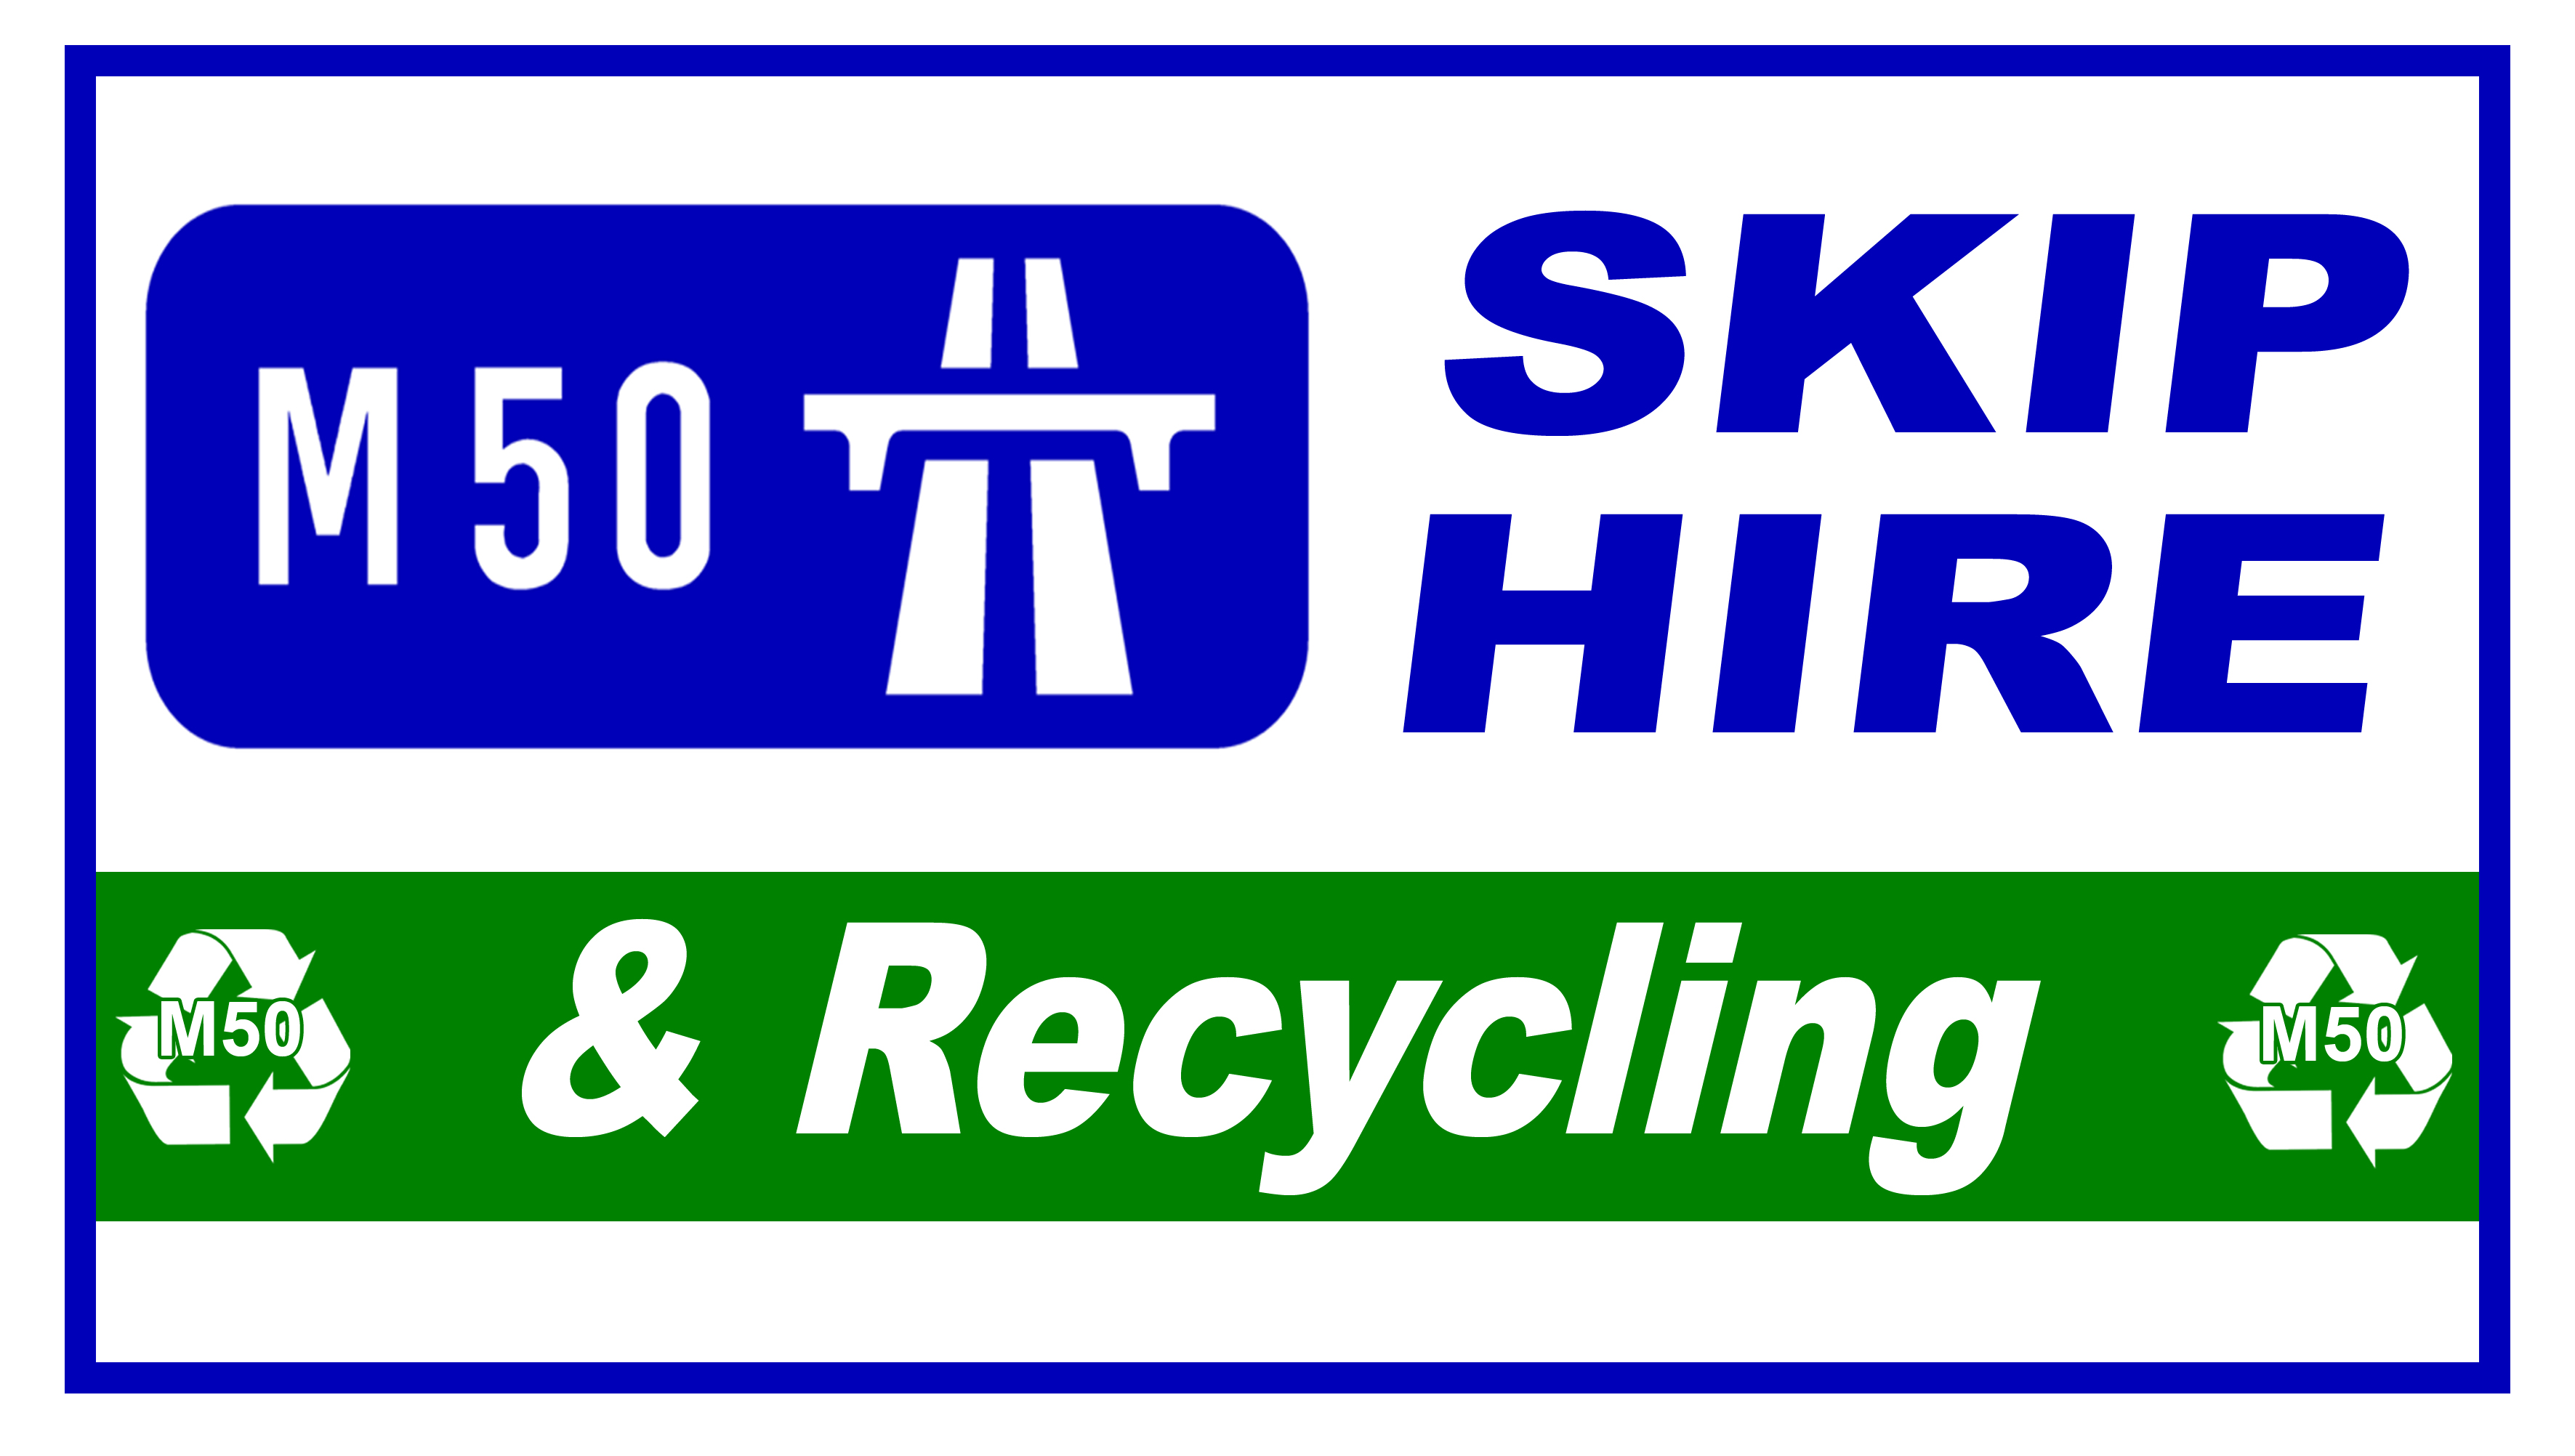 M50 Skip Hire & Recycling